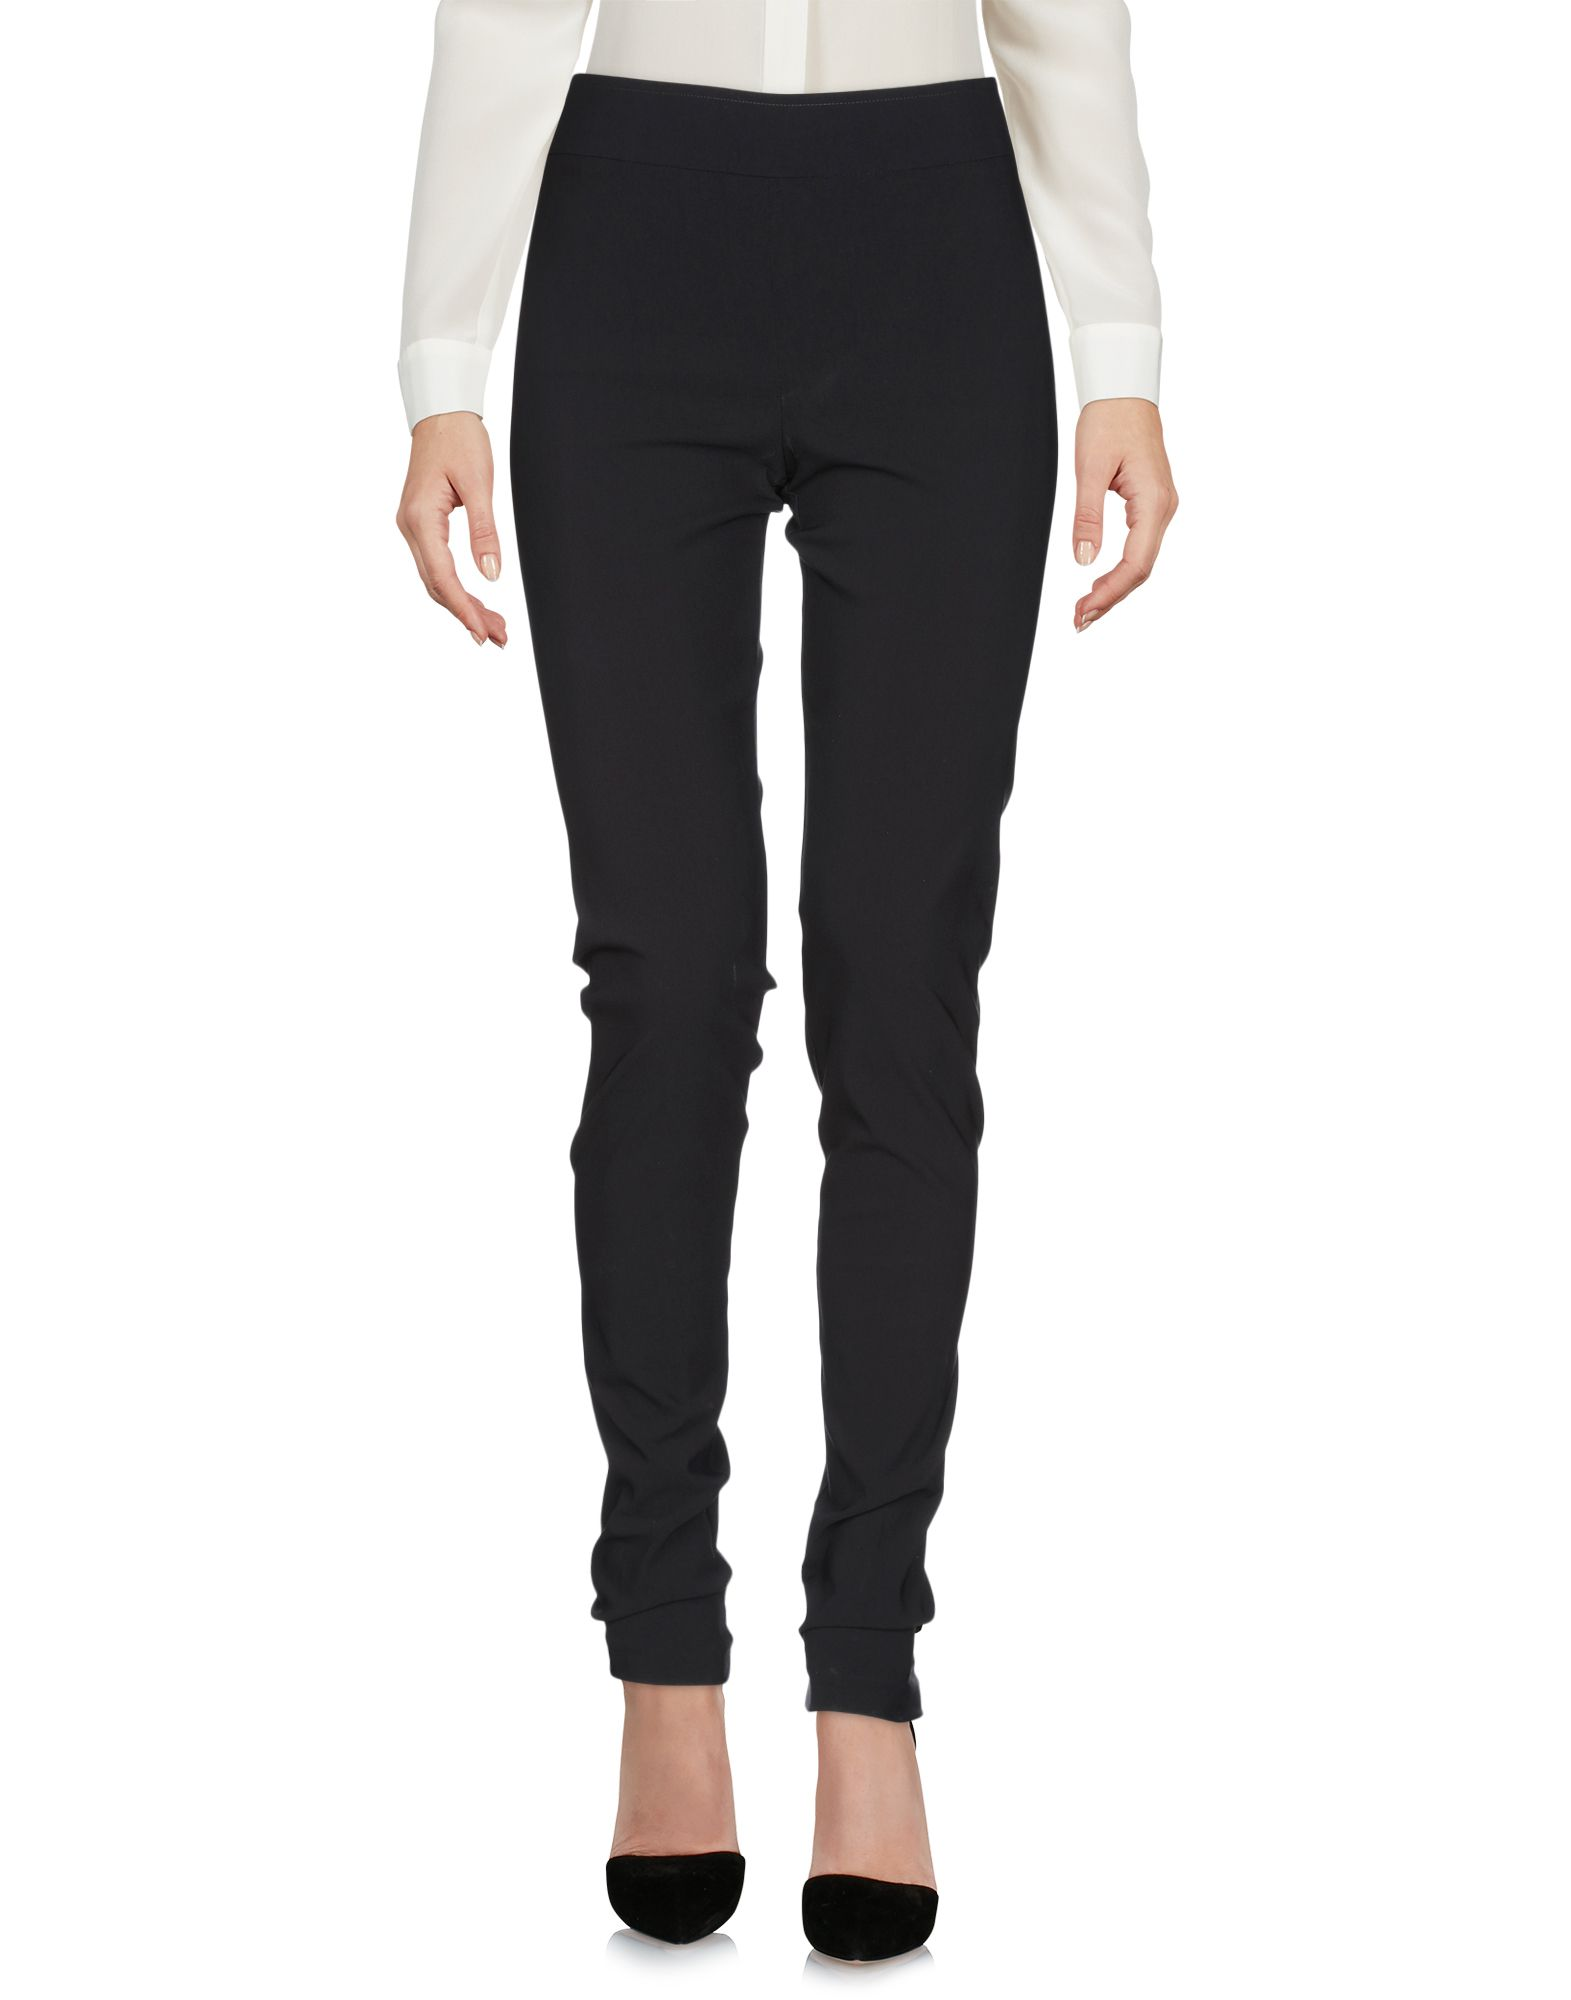 AVENUE MONTAIGNE Casual Pants in Black